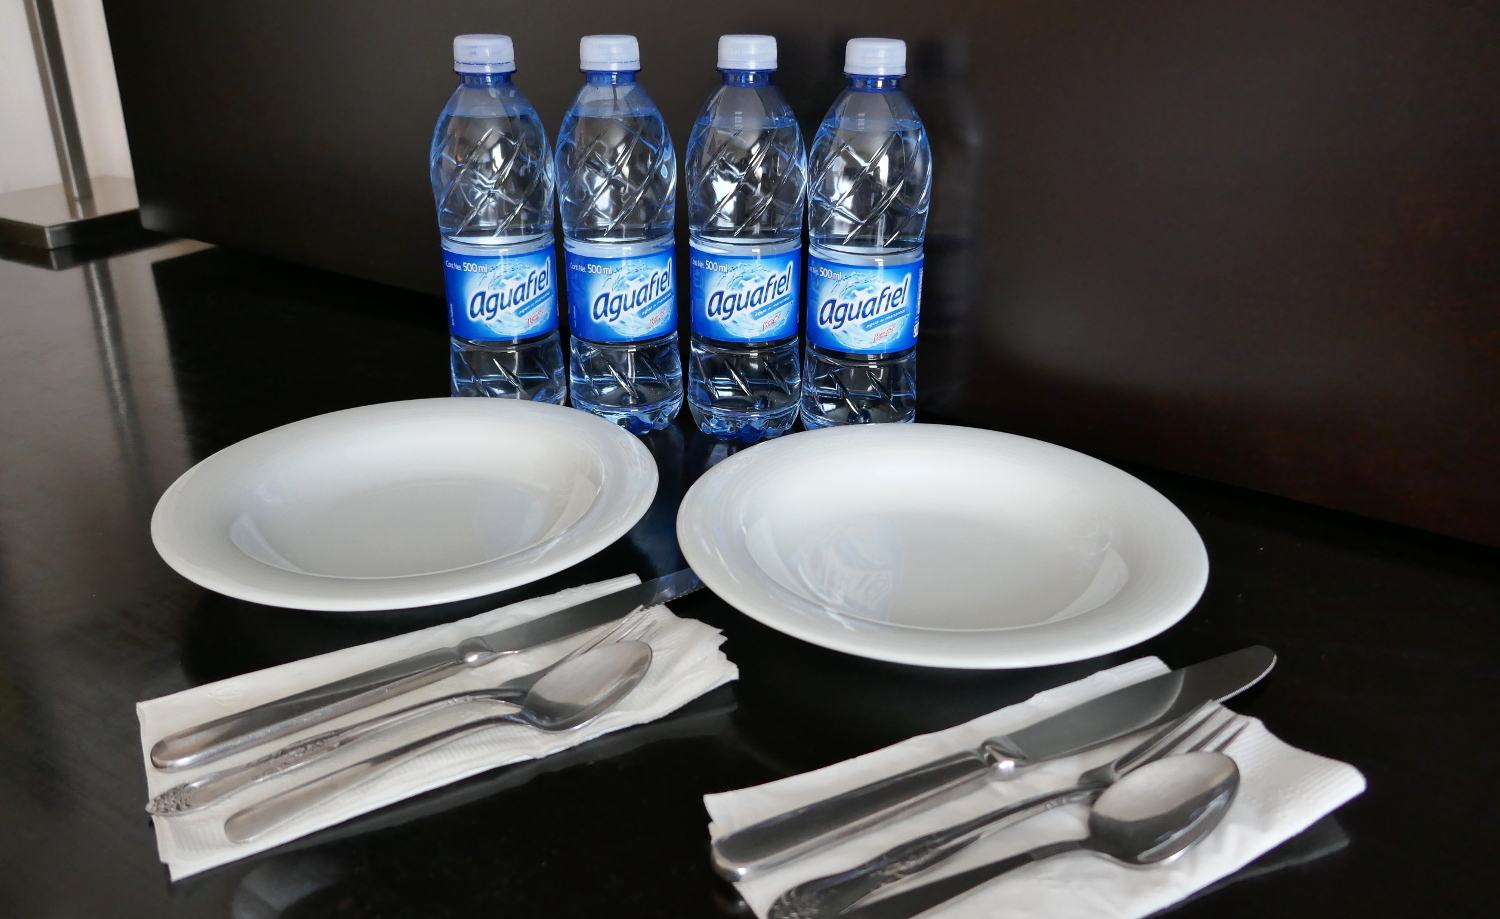 hotel hacks eating hotel room place settings extra water silverware salad bowl plates